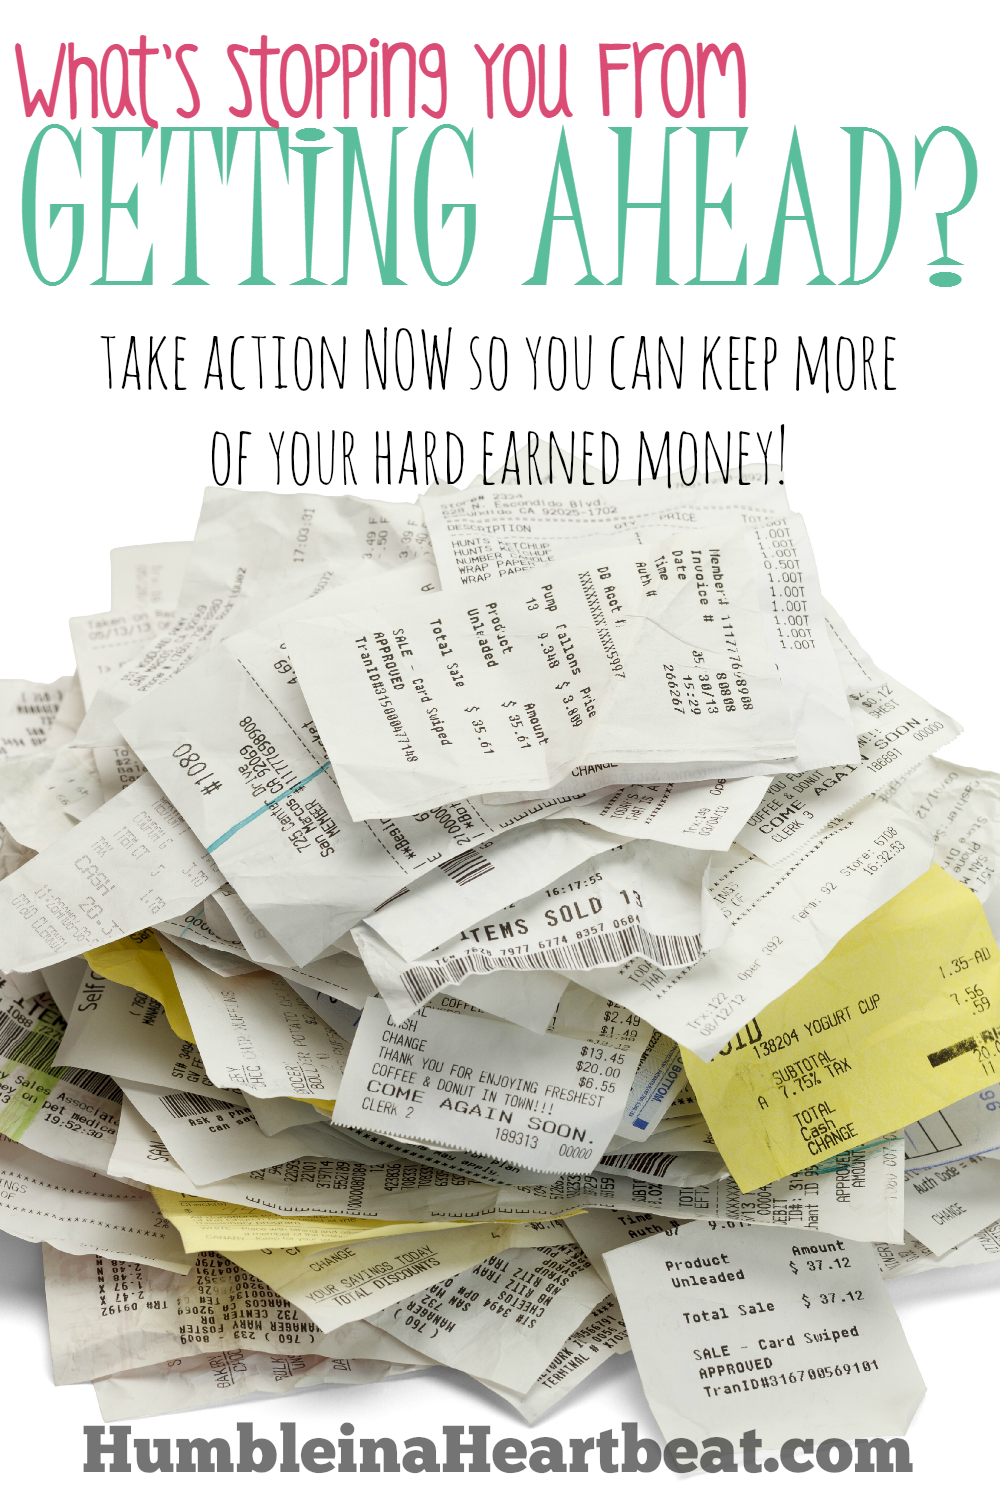 YOU, and only YOU, are the one stopping yourself from getting ahead! Work on your money management issues one at a time and break free from the paycheck to paycheck life once and for all!